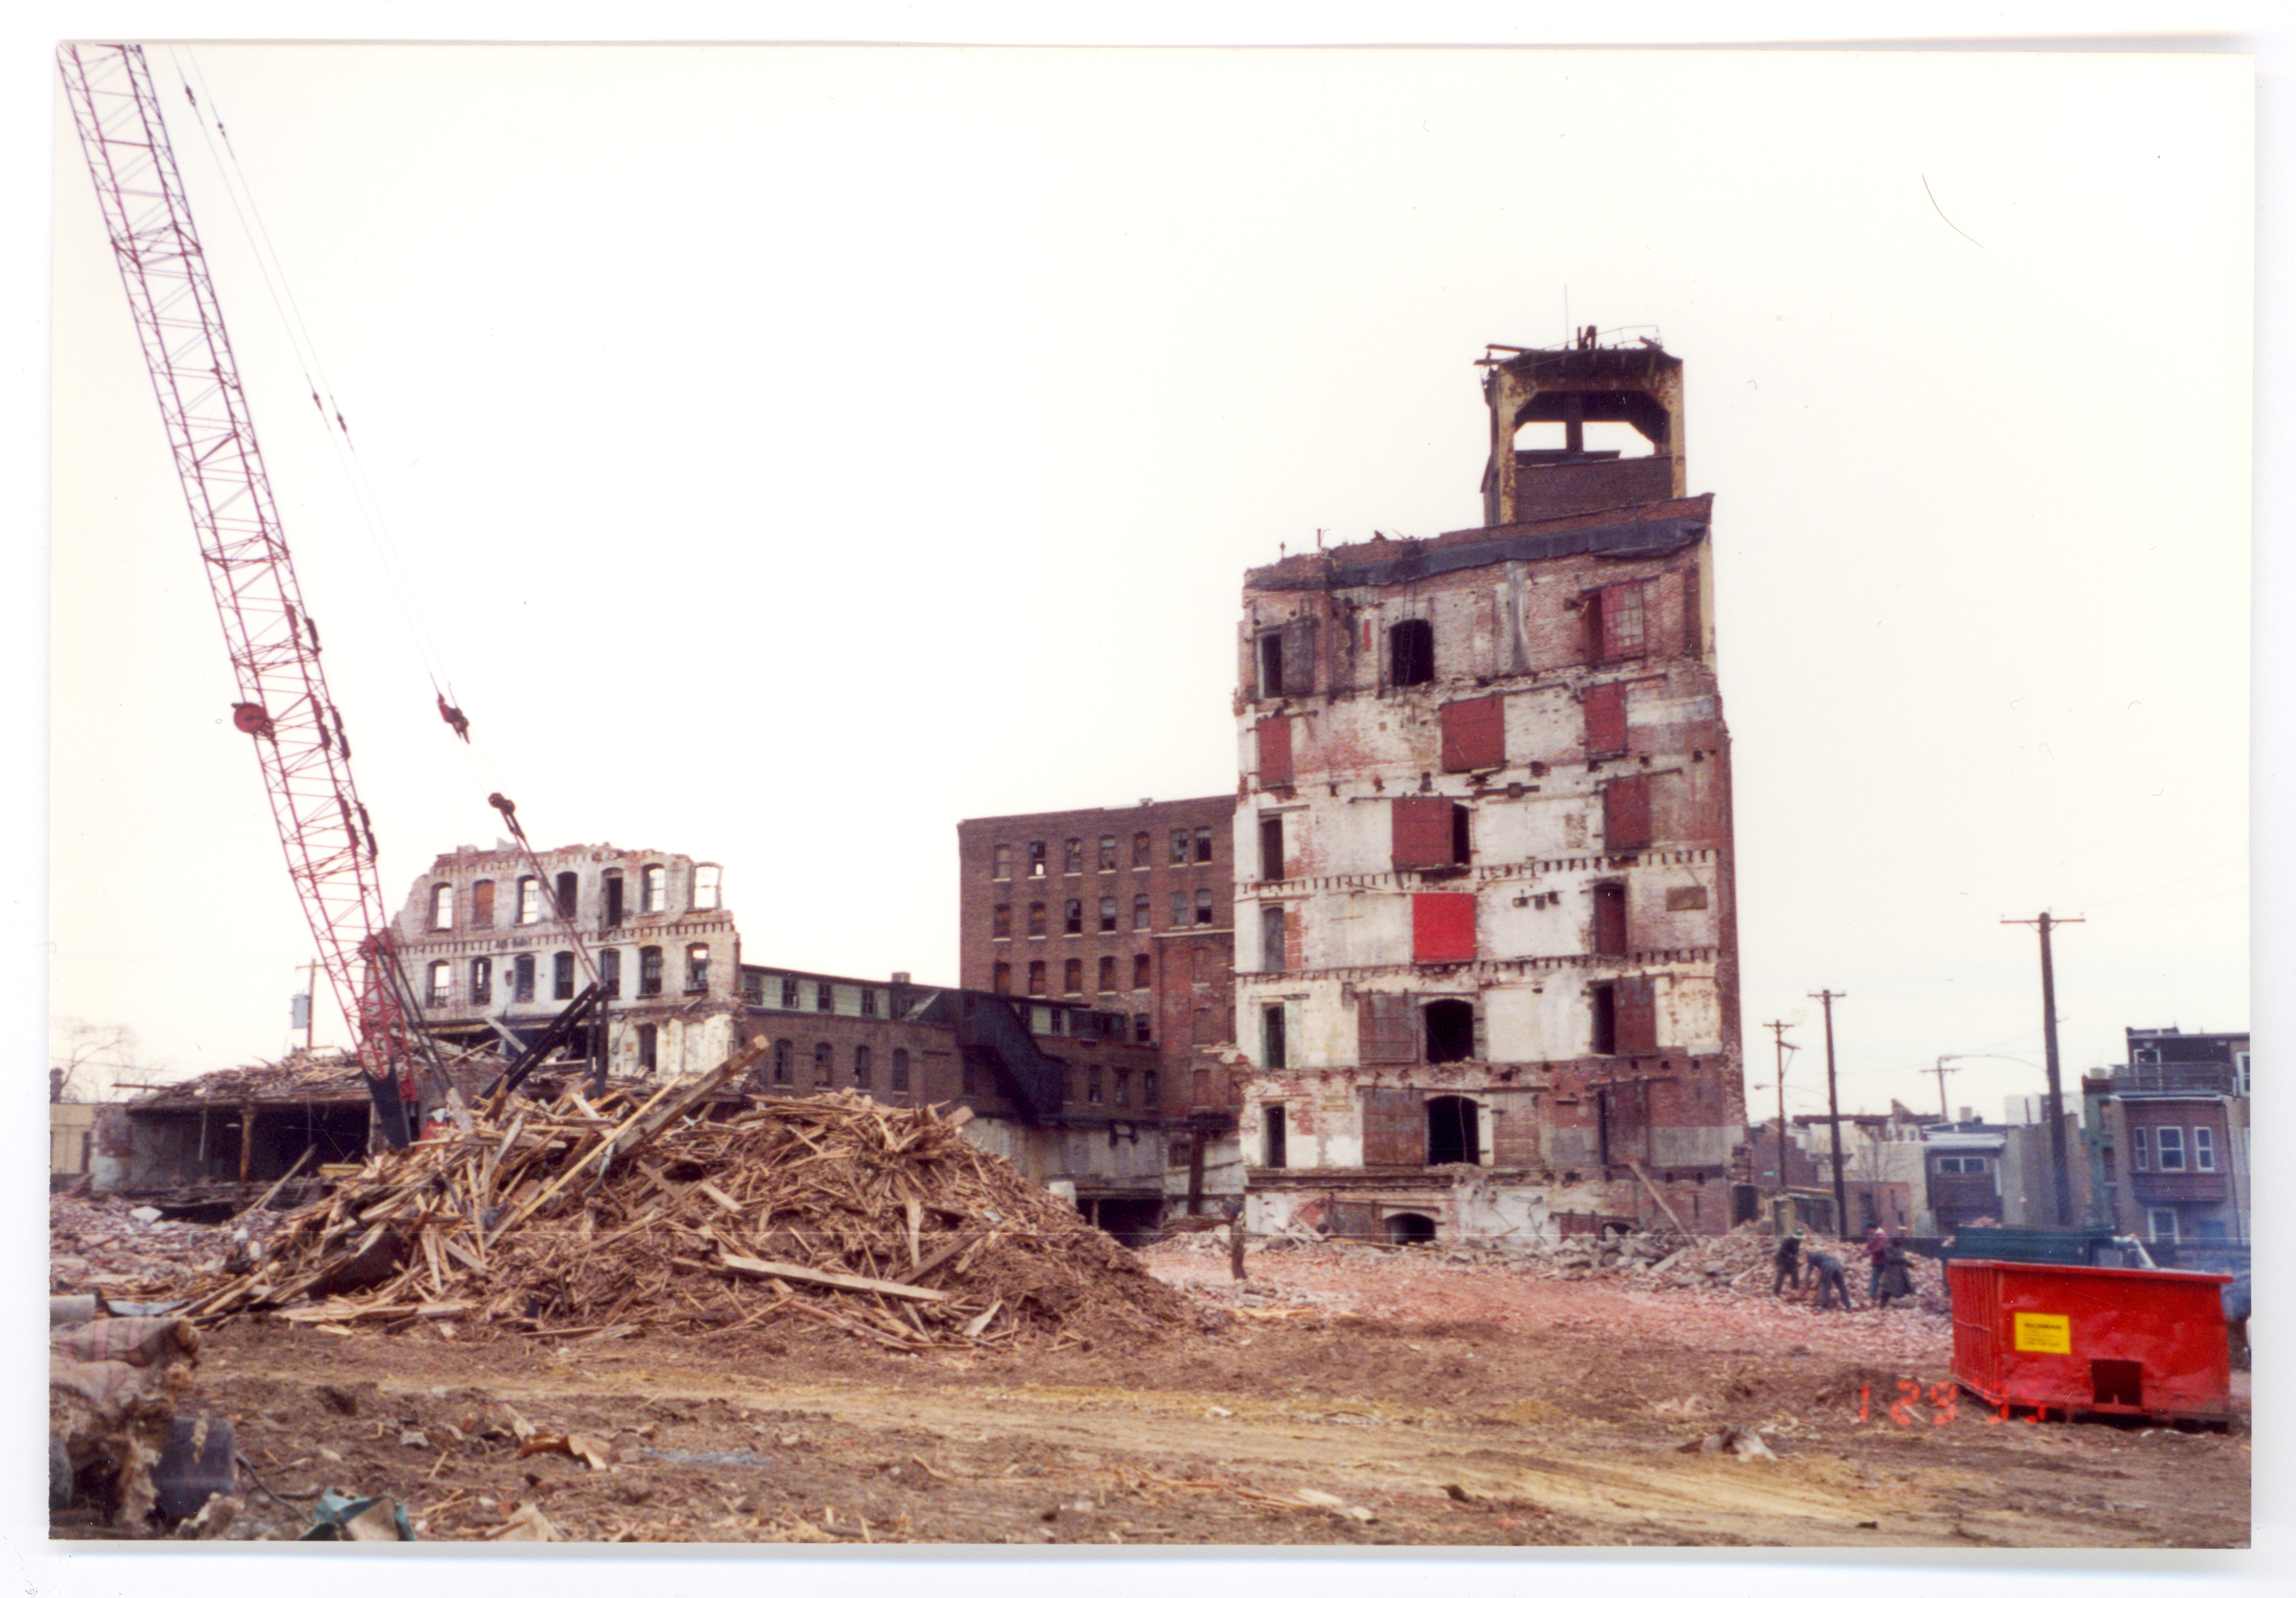 1995 demolition of Burk Brothers complex, photo by Jennifer Baker